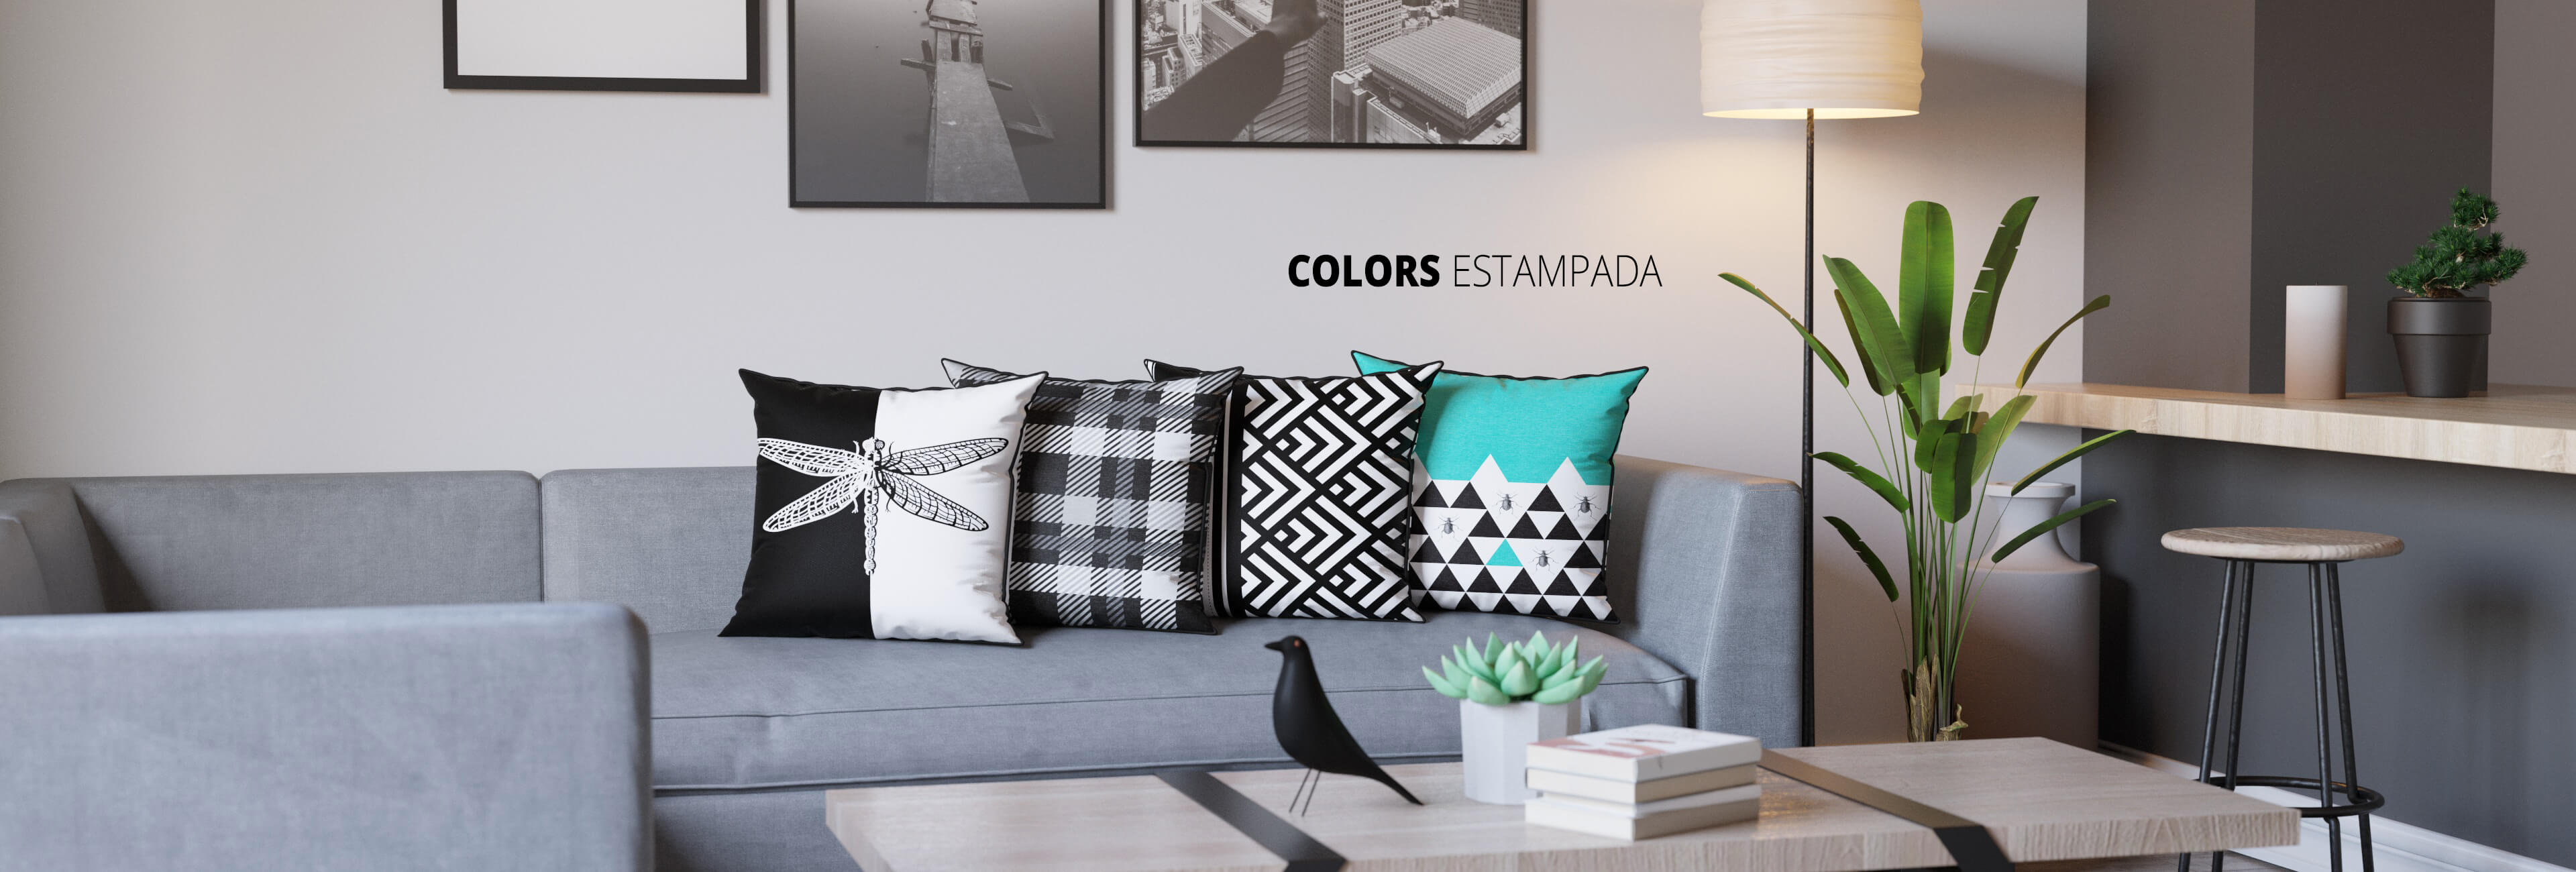 HOME - COLORS